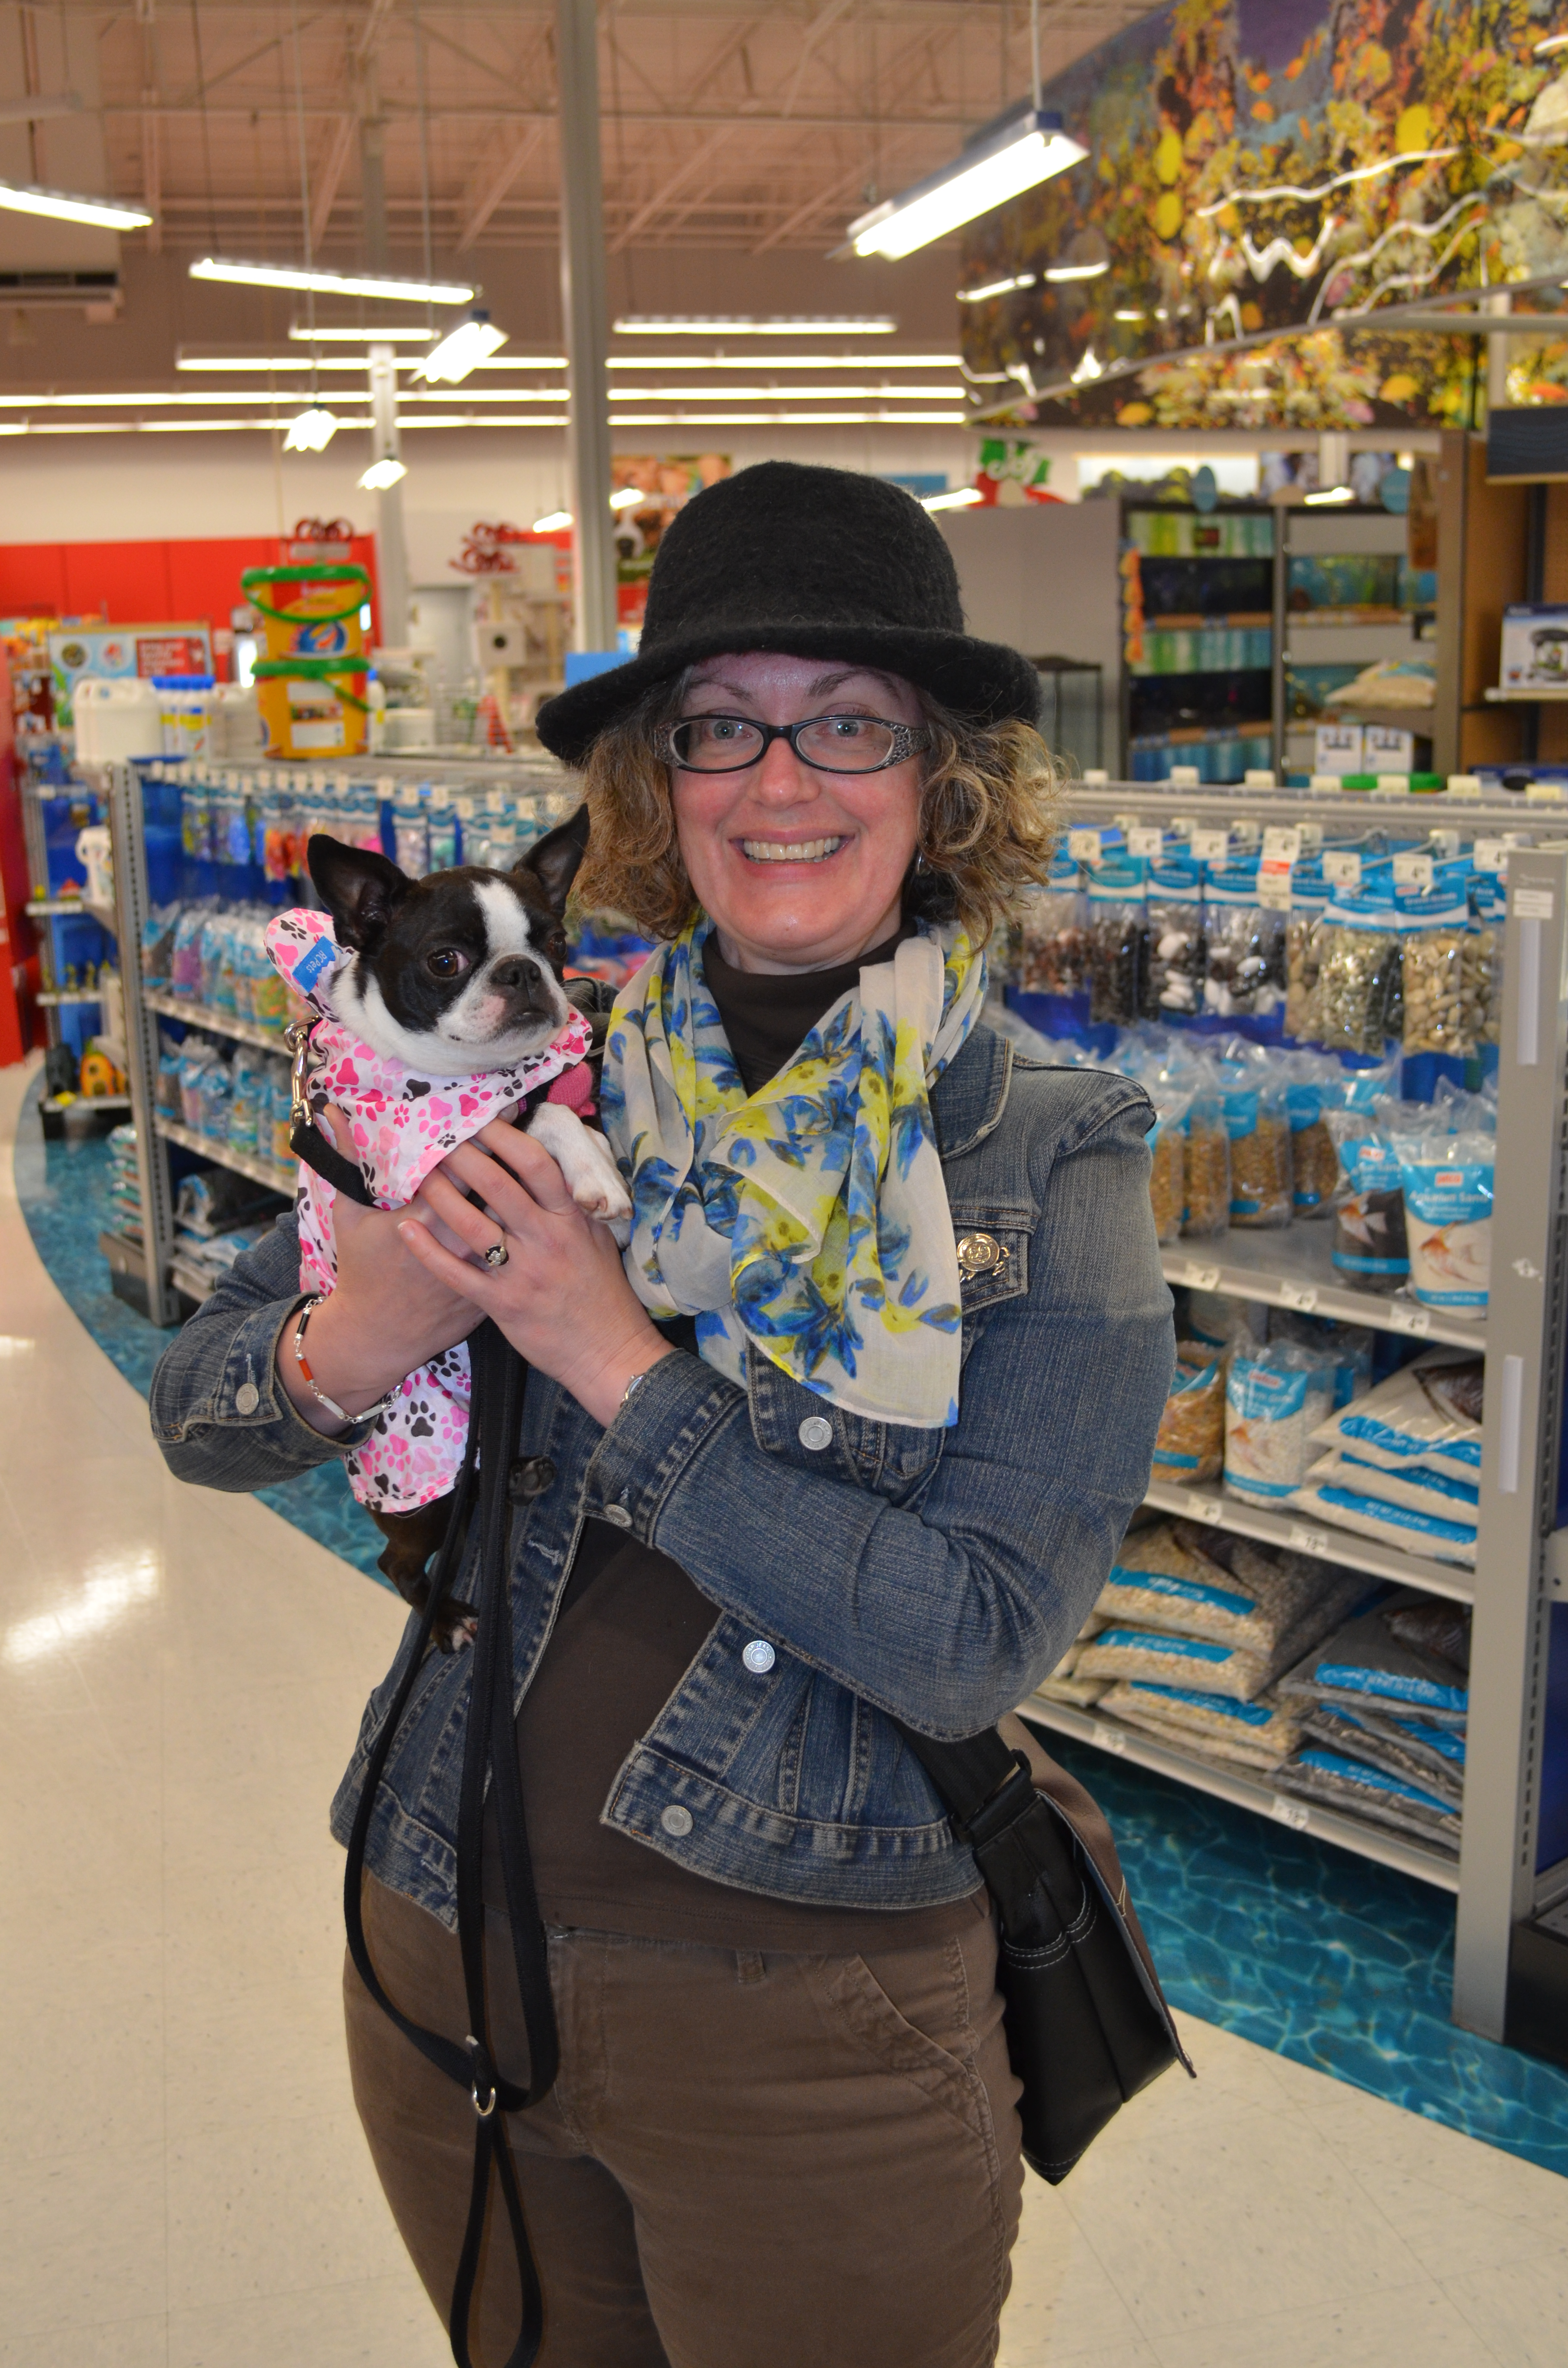 Jean Dion, cat blogger, makes a celebrity appearance!